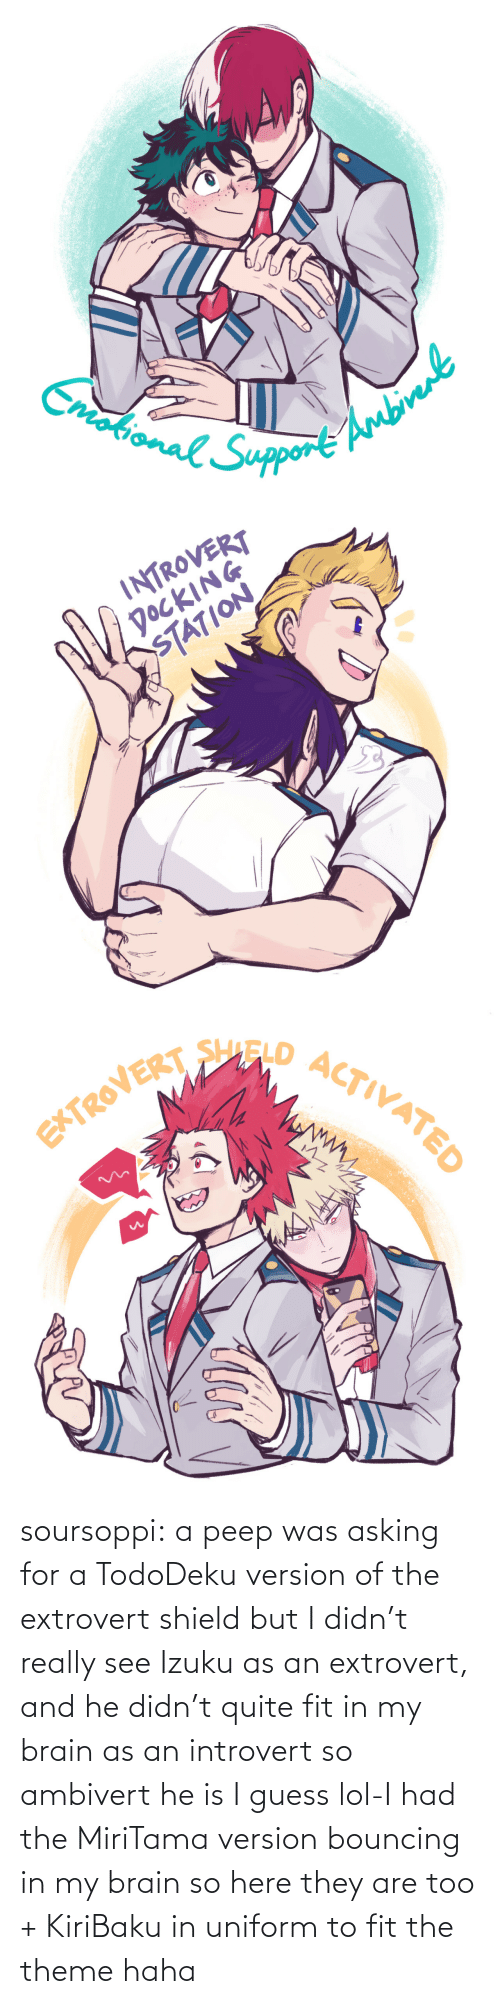 lol: soursoppi:  a peep was asking for a TodoDeku version of the extrovert shield but I didn't really see Izuku as an extrovert, and he didn't quite fit in my brain as an introvert so ambivert he is I guess lol-I had the MiriTama version bouncing in my brain so here they are too + KiriBaku in uniform to fit the theme haha